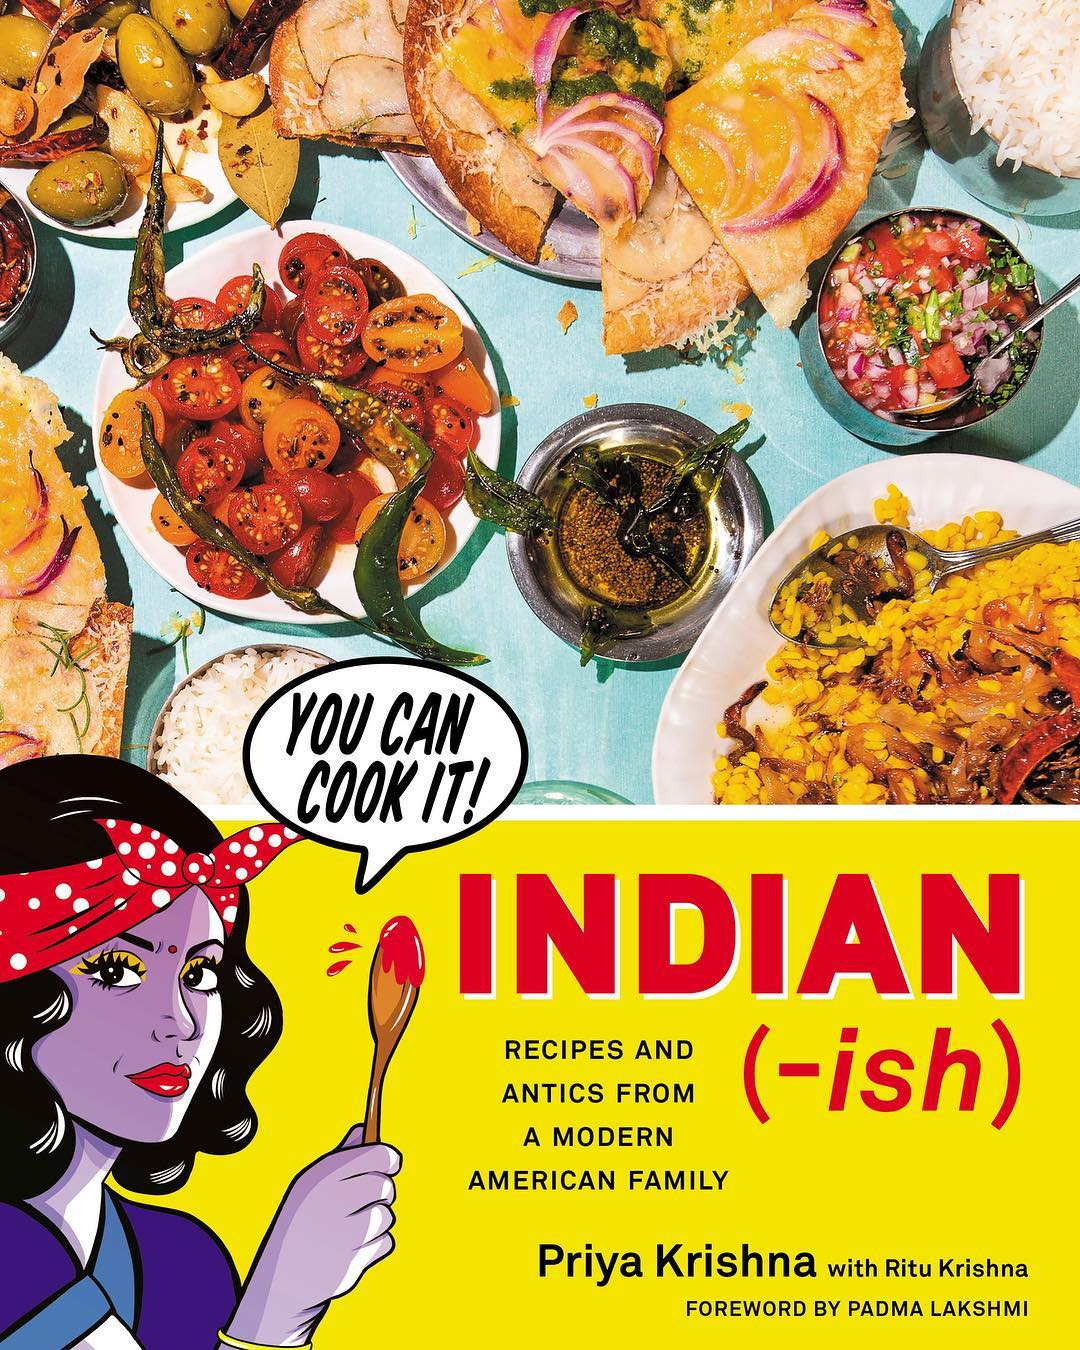 IndianishCover (HowTo).jpg